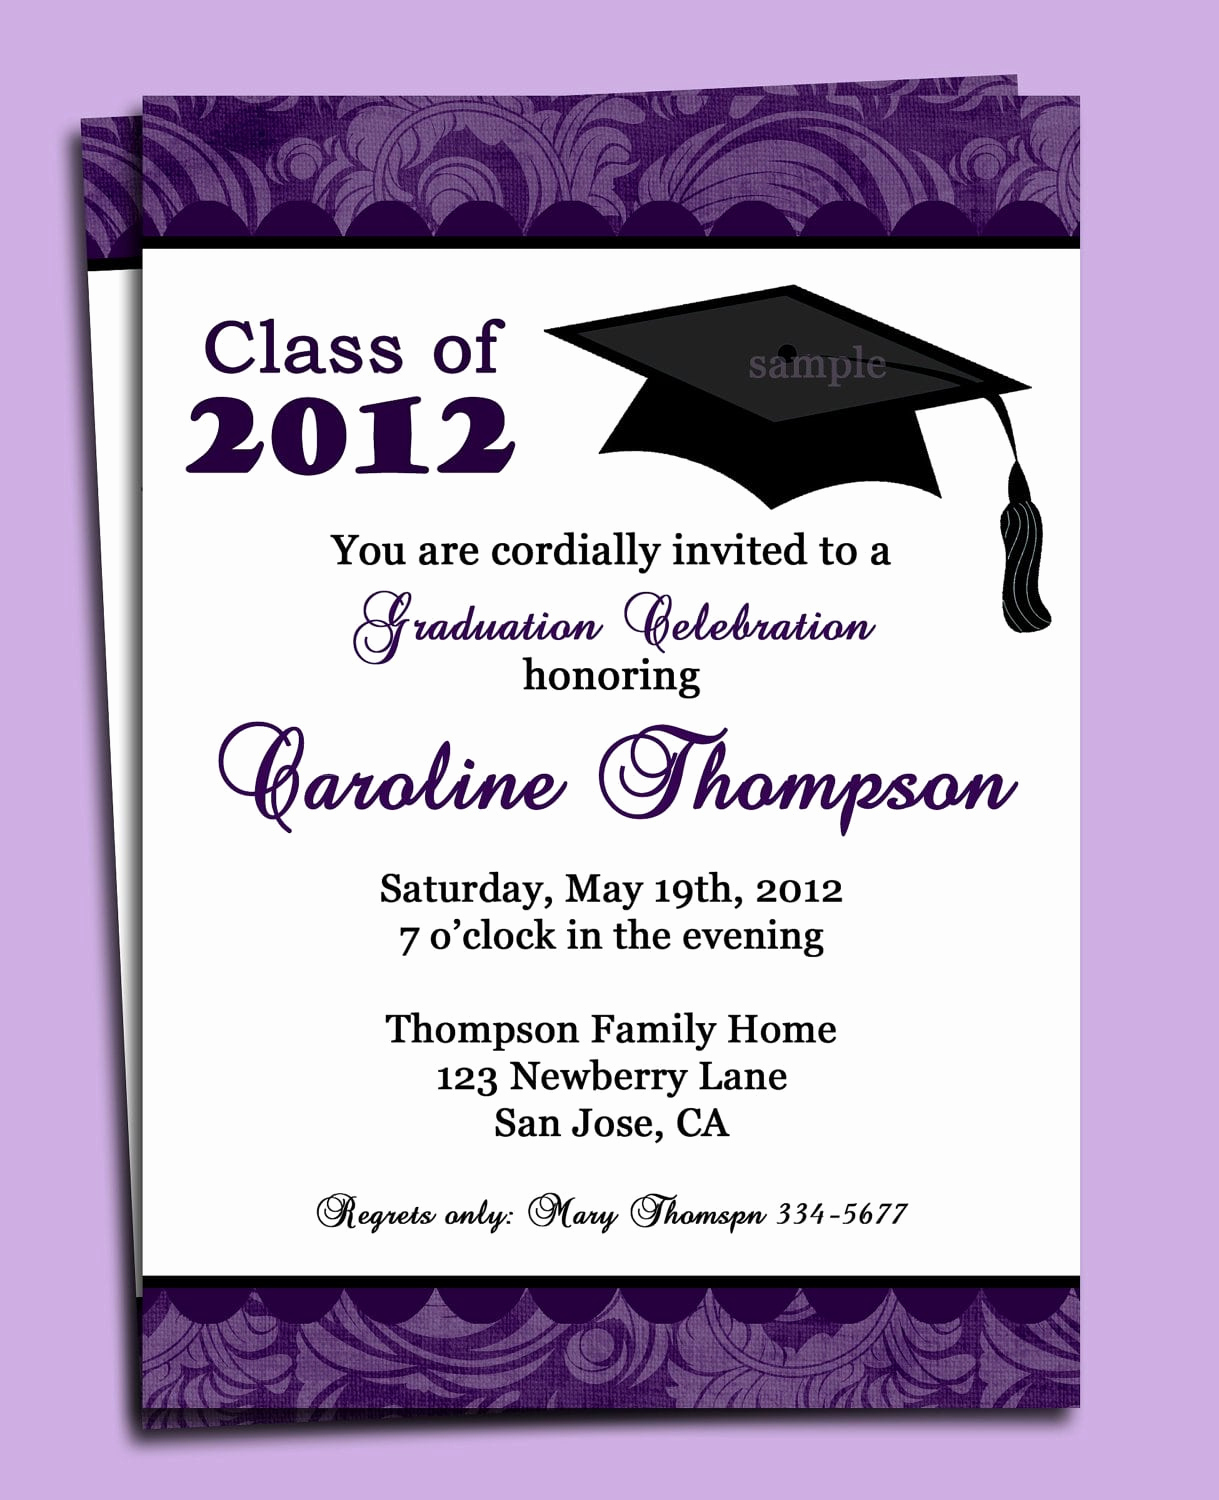 Graduation Party Invitation Wording Ideas Unique Sample Invitation for Graduation Party